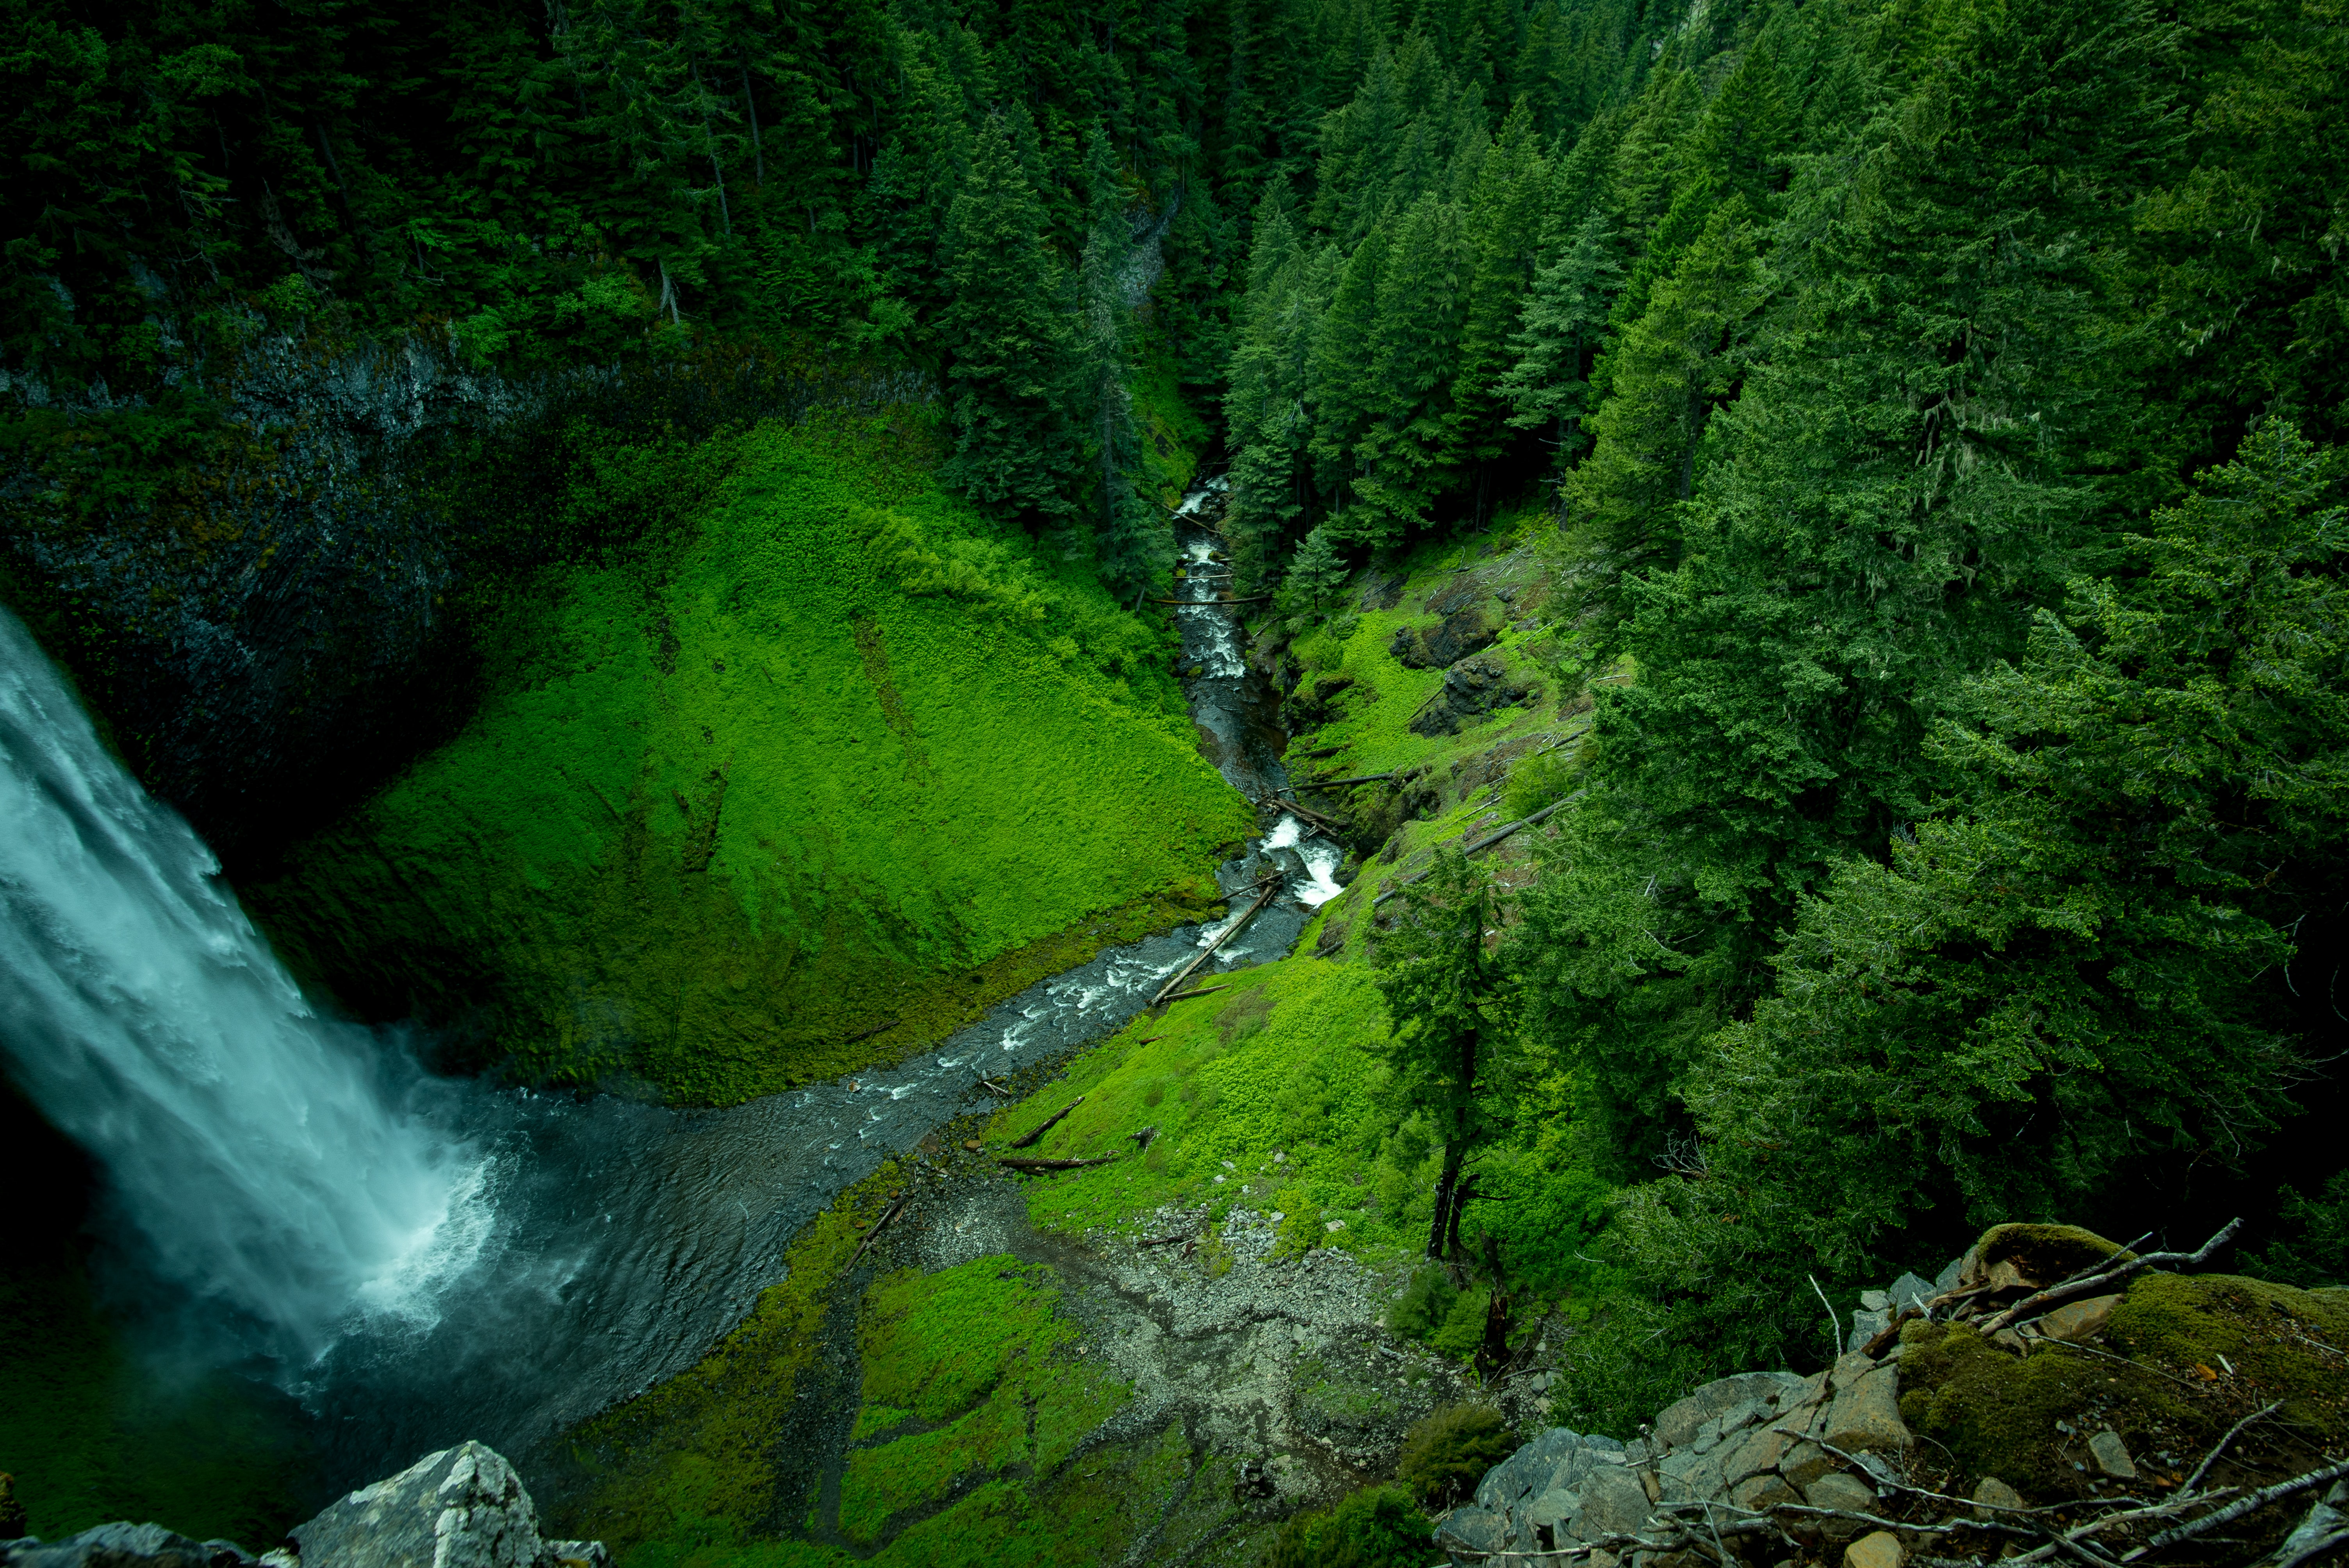 Looking down at a lush green forest and a waterfall